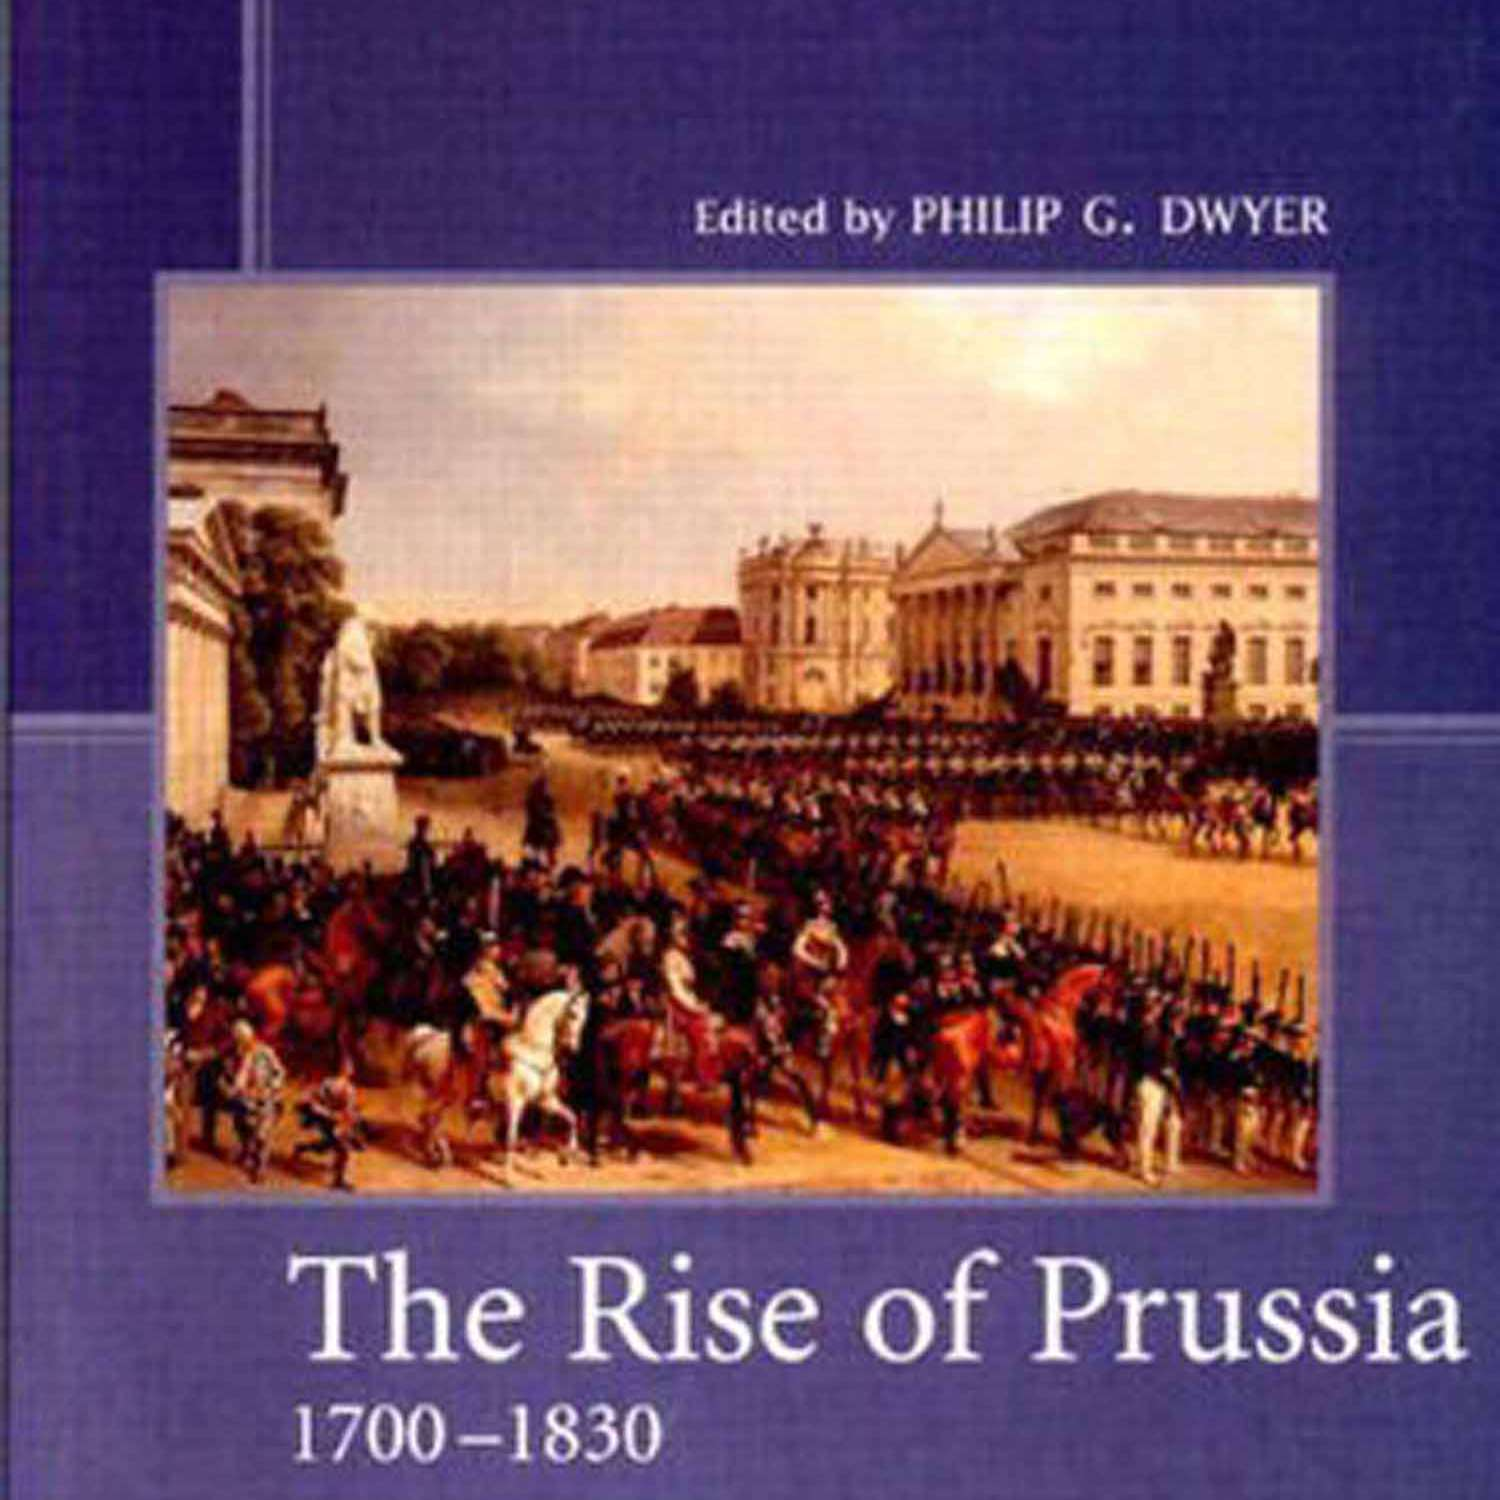 The Rise of Prussia 1700 - 1830 by Philip G. Dwyer